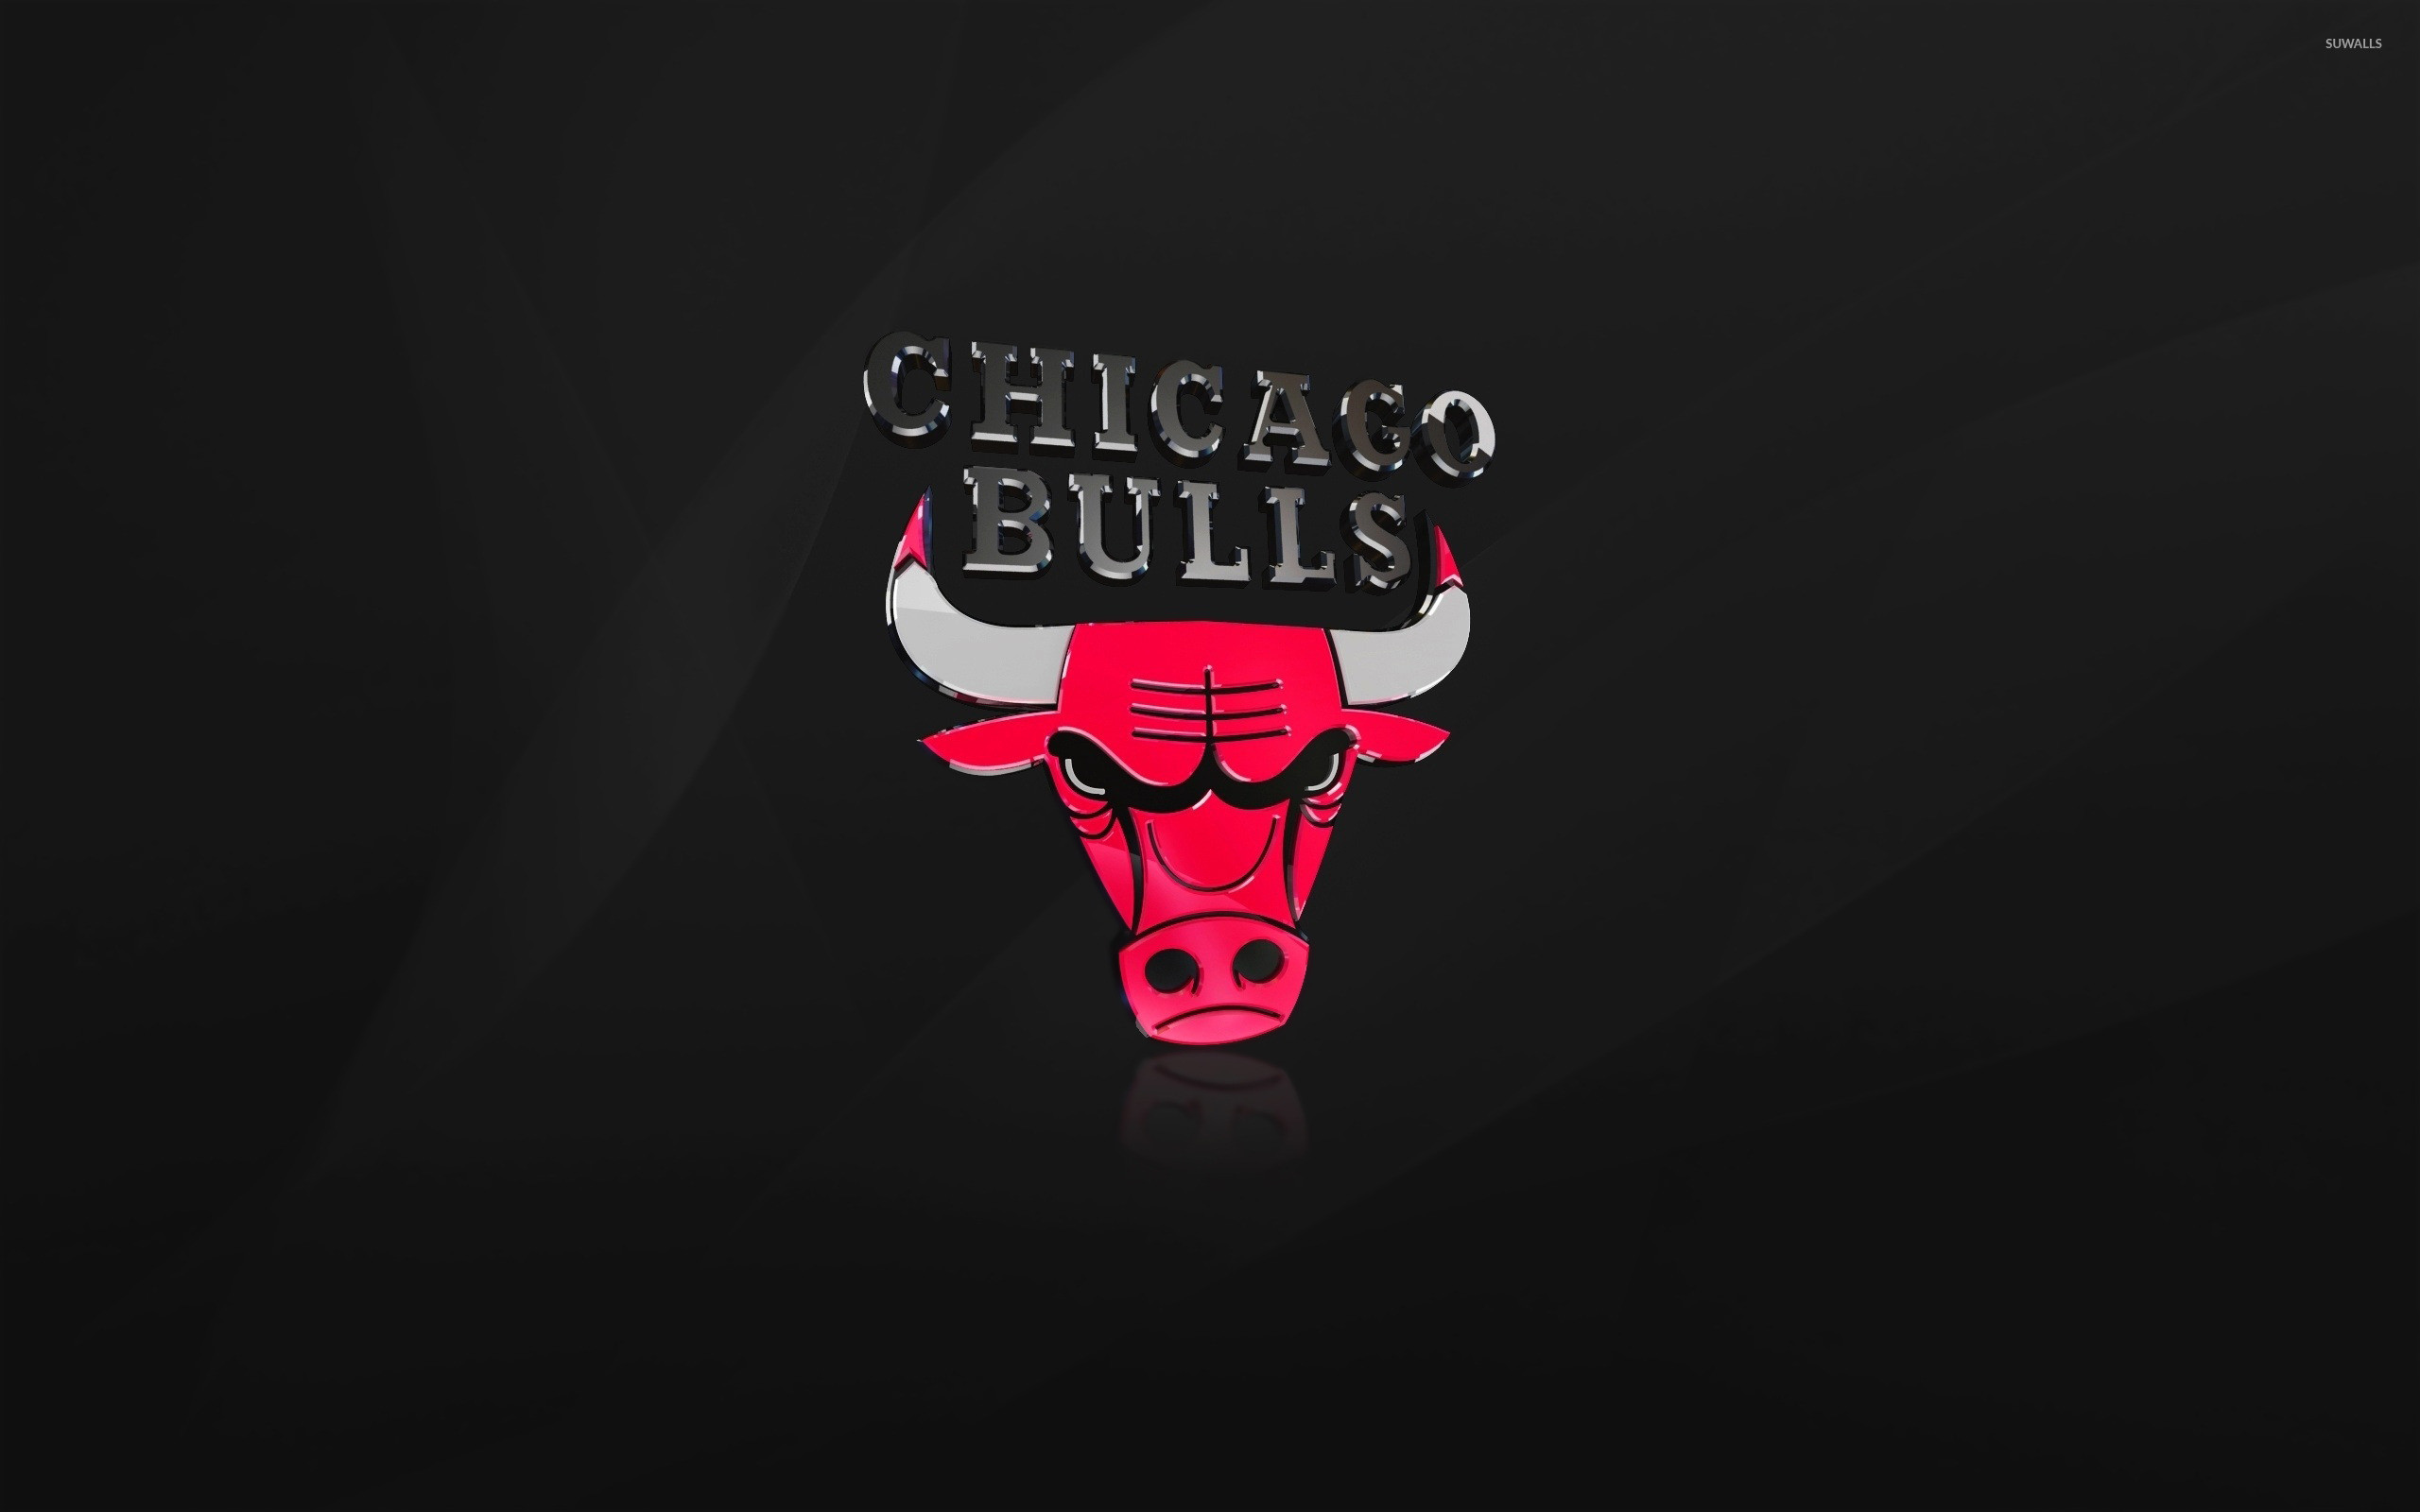 2560x1600 Shiny Chicago Bulls logo wallpaper